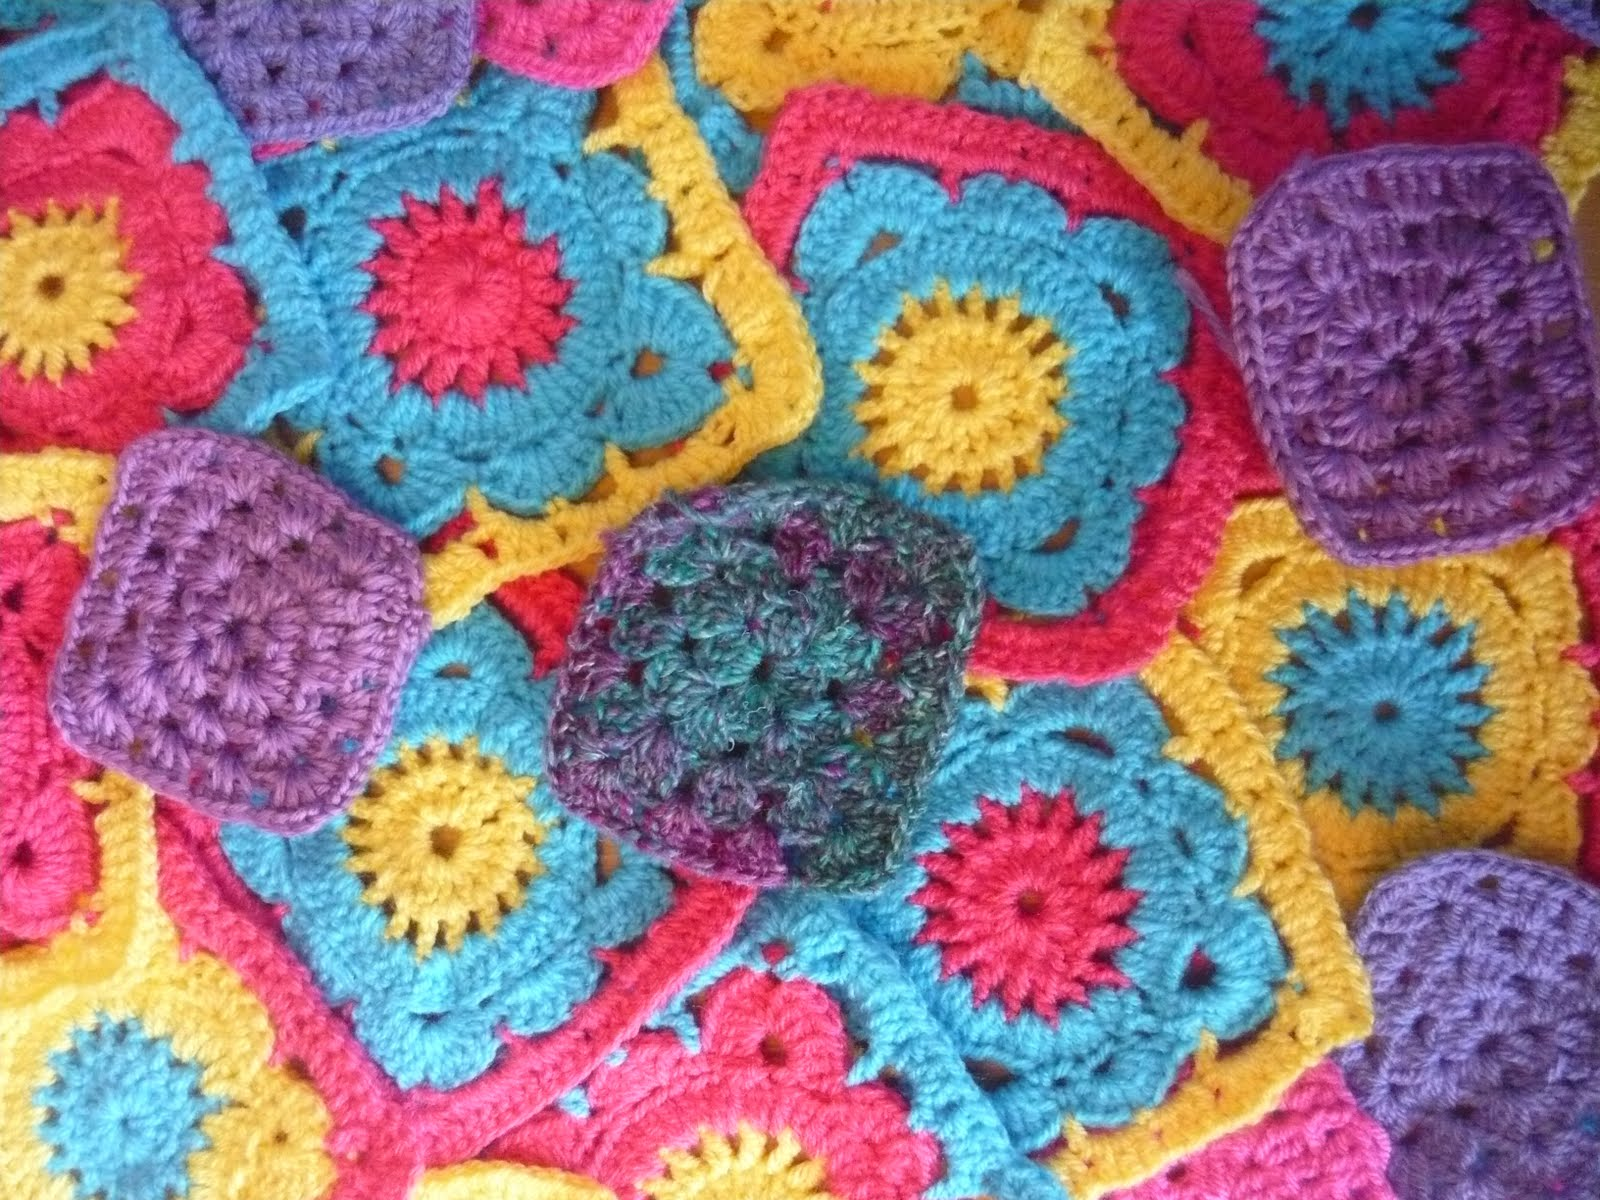 The Gingerbread Bunny: How to crochet a Granny Square!